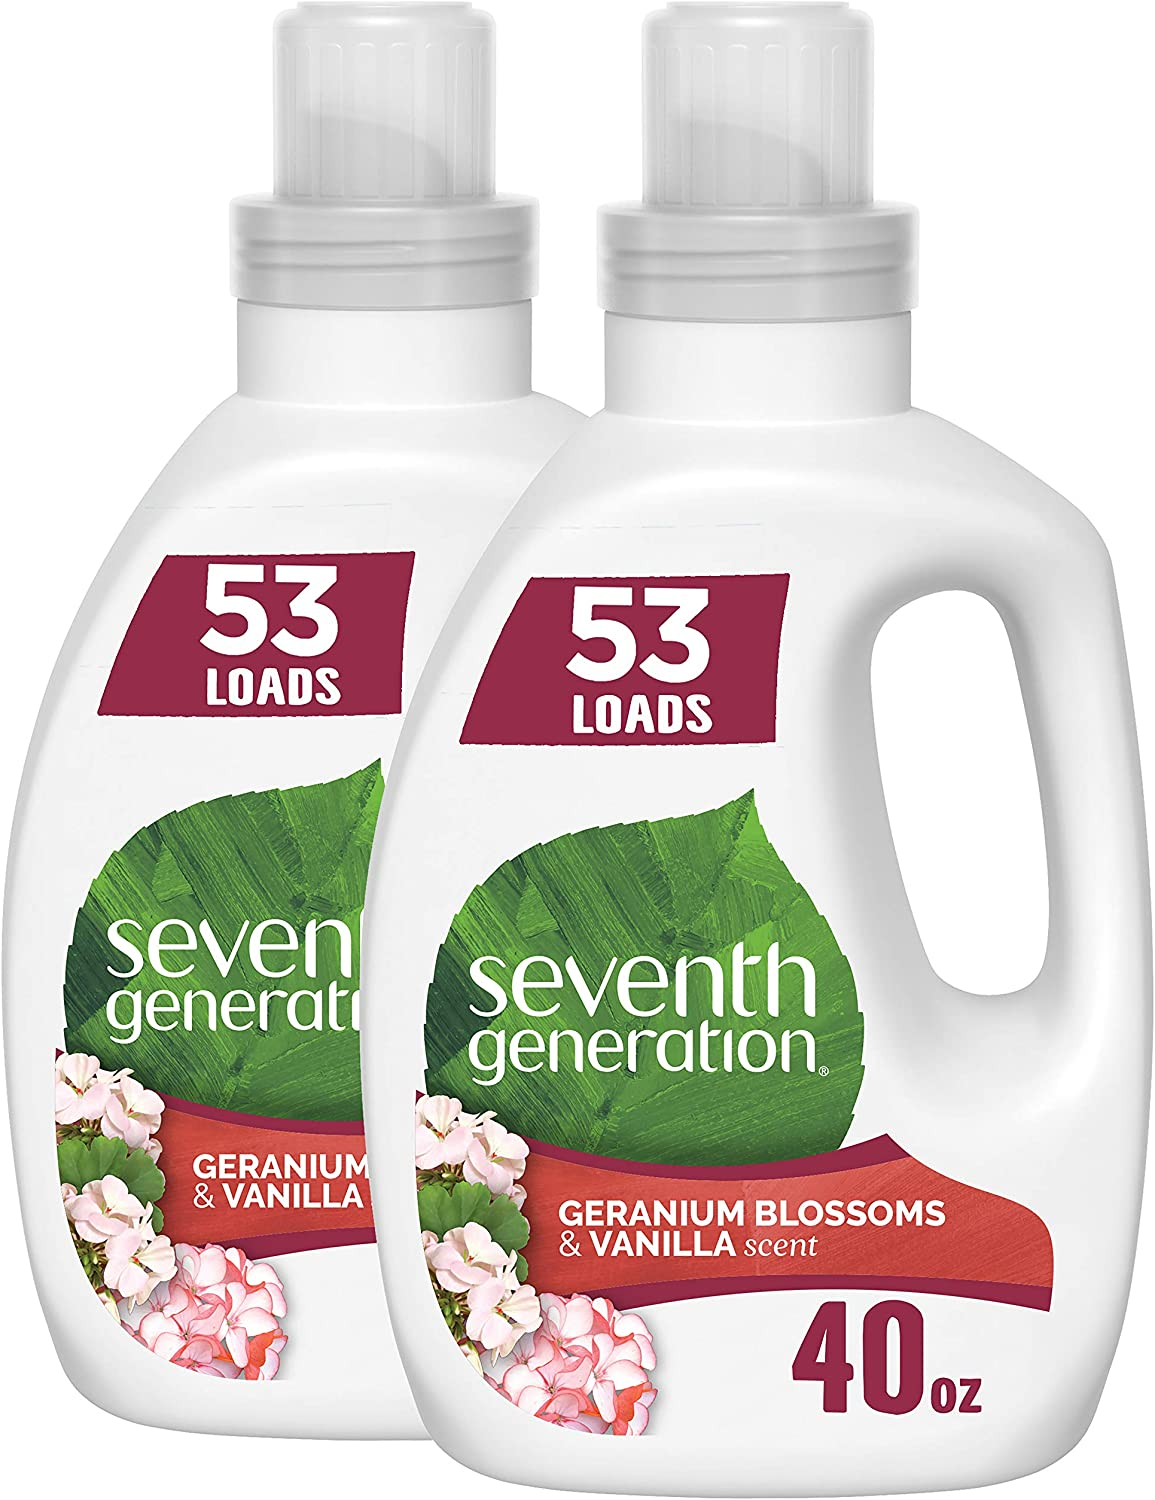 Seventh Generation Concentrated Laundry Detergent, Geranium Blossom & Vanilla, 40 oz, Pack of 2 (106 Loads): Health & Personal Care